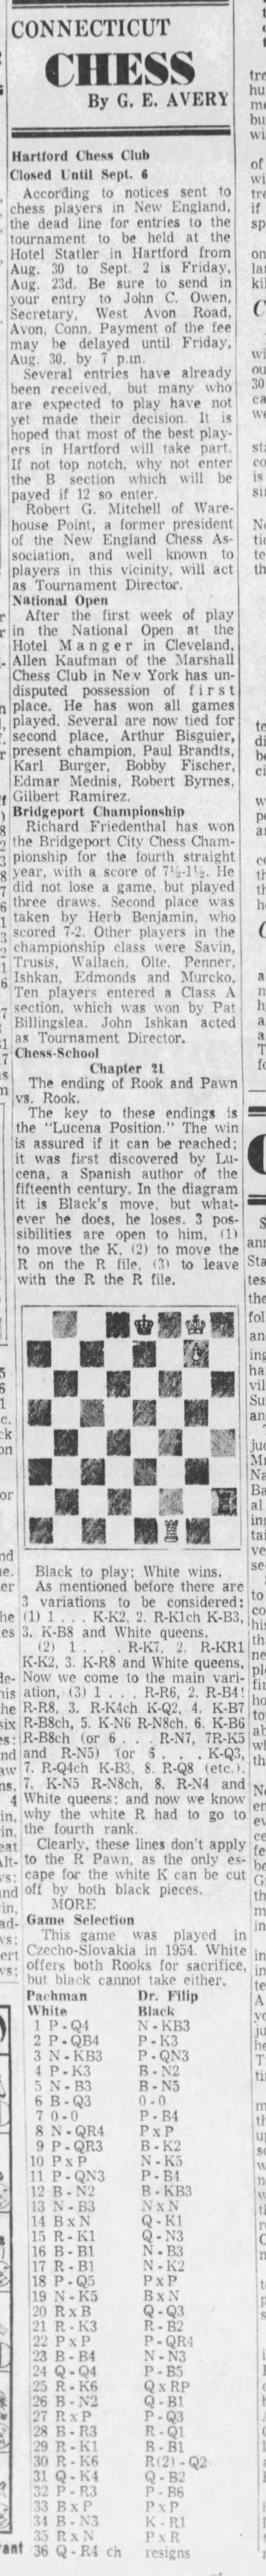 Connecticut Chess by G.E. Avery -